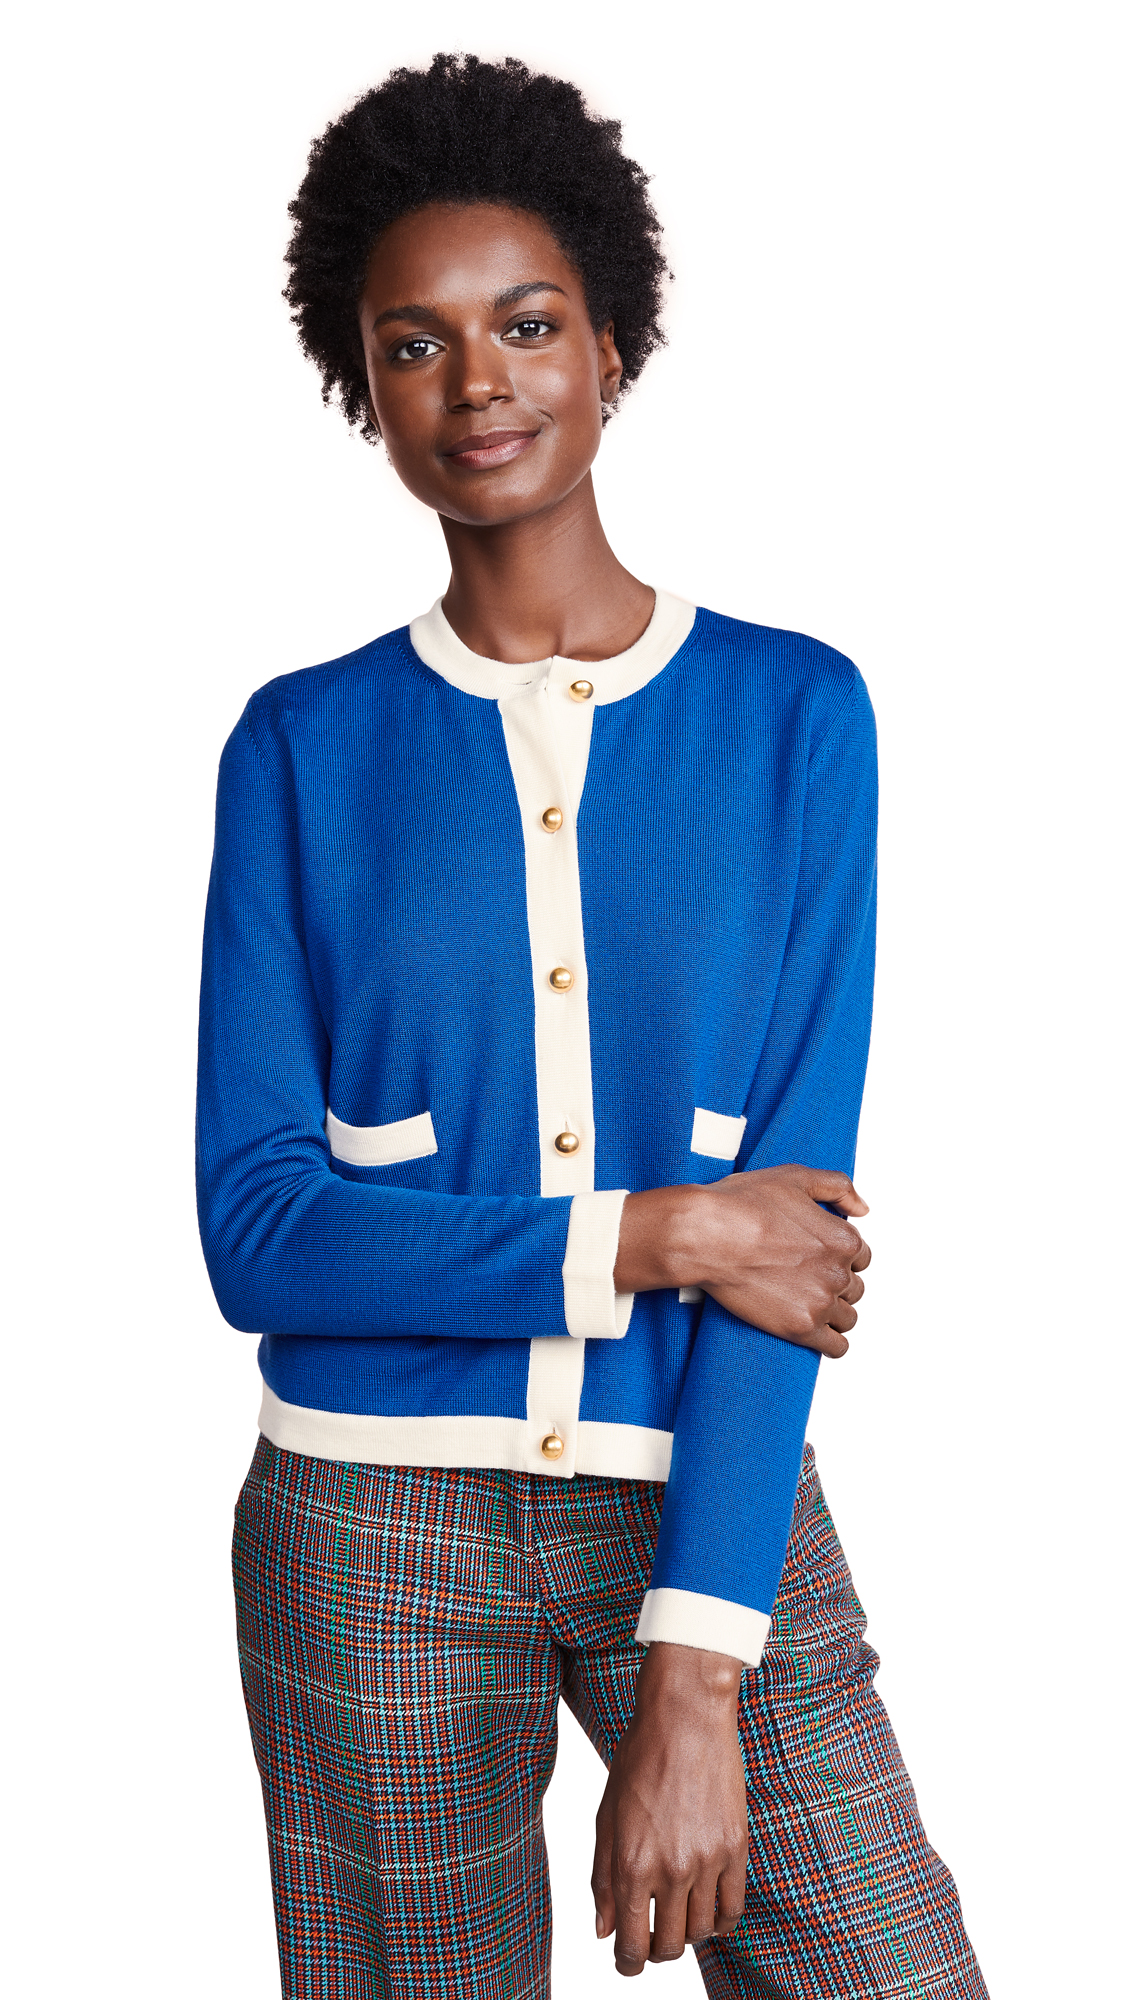 Tory Burch Kendra Cardigan In Indian Ocean